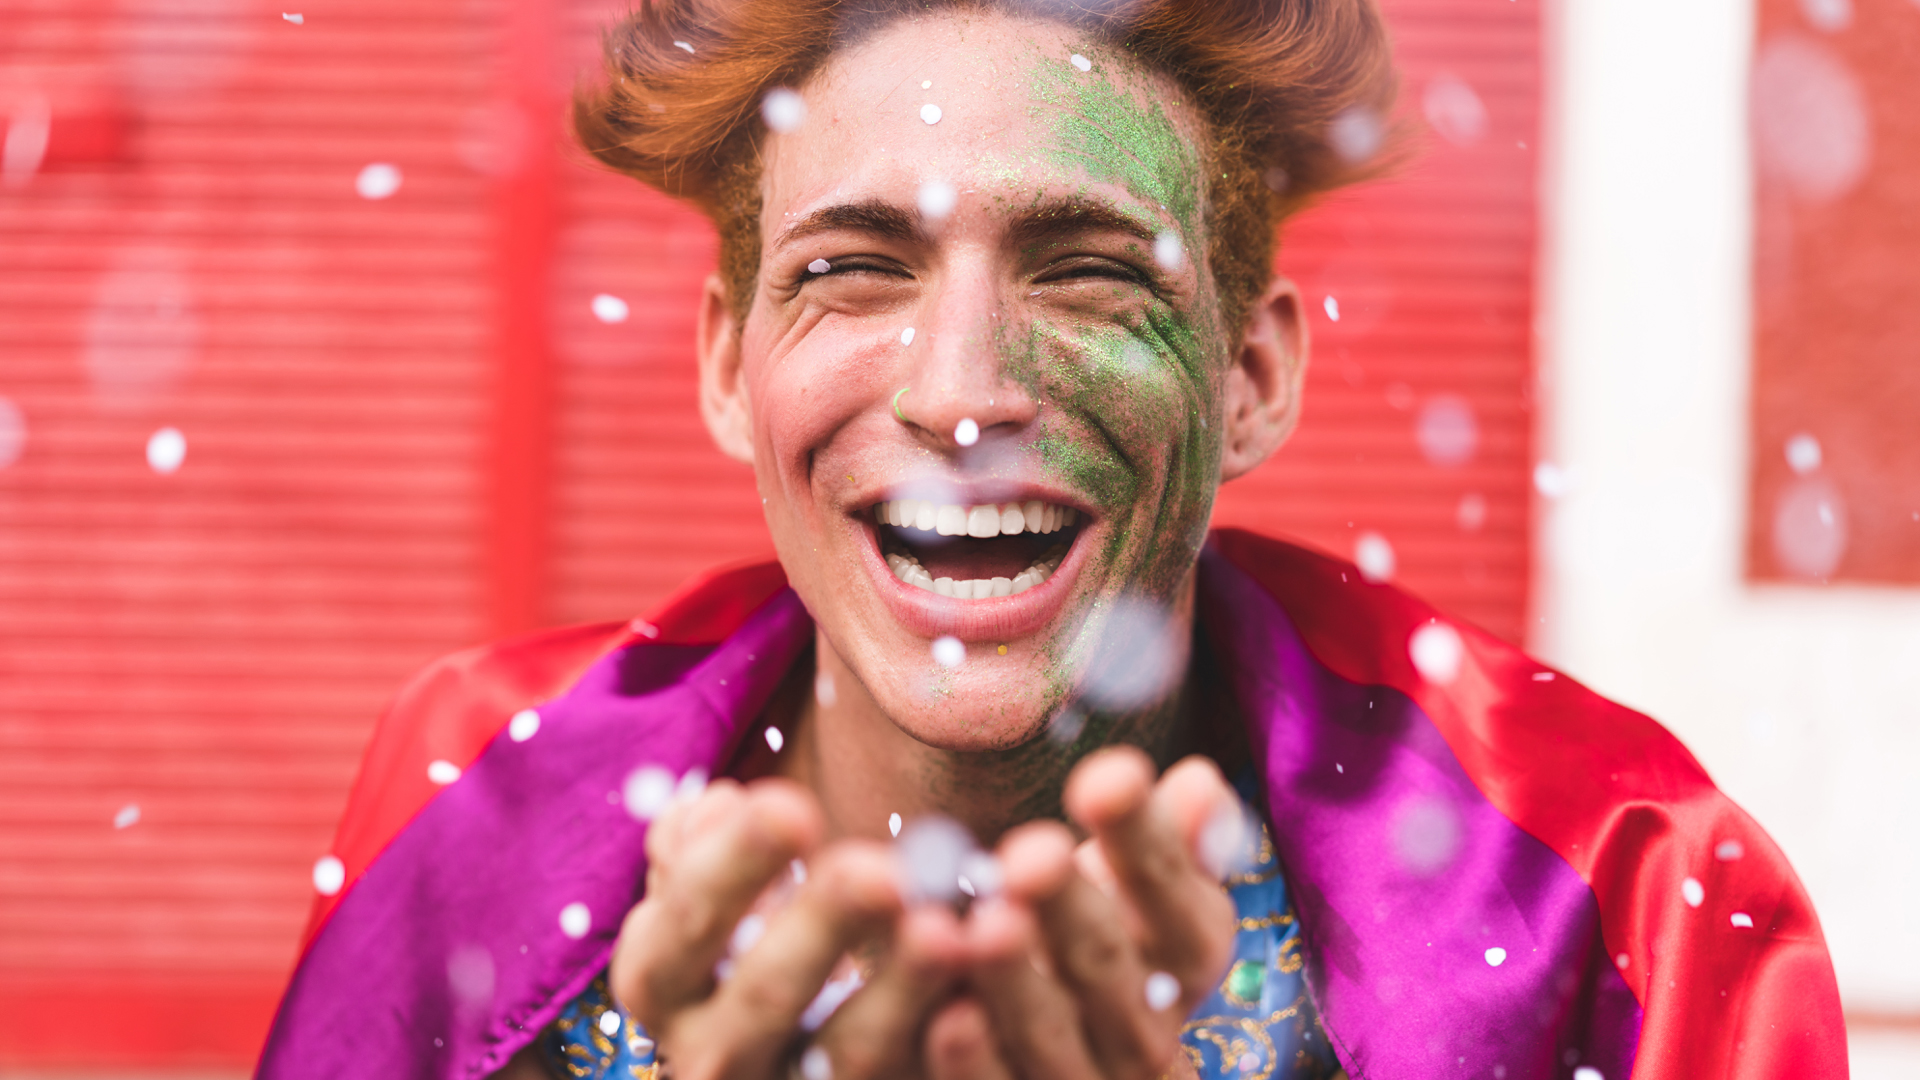 An adult with a painted face at a festival with their hands cupped catching glitter